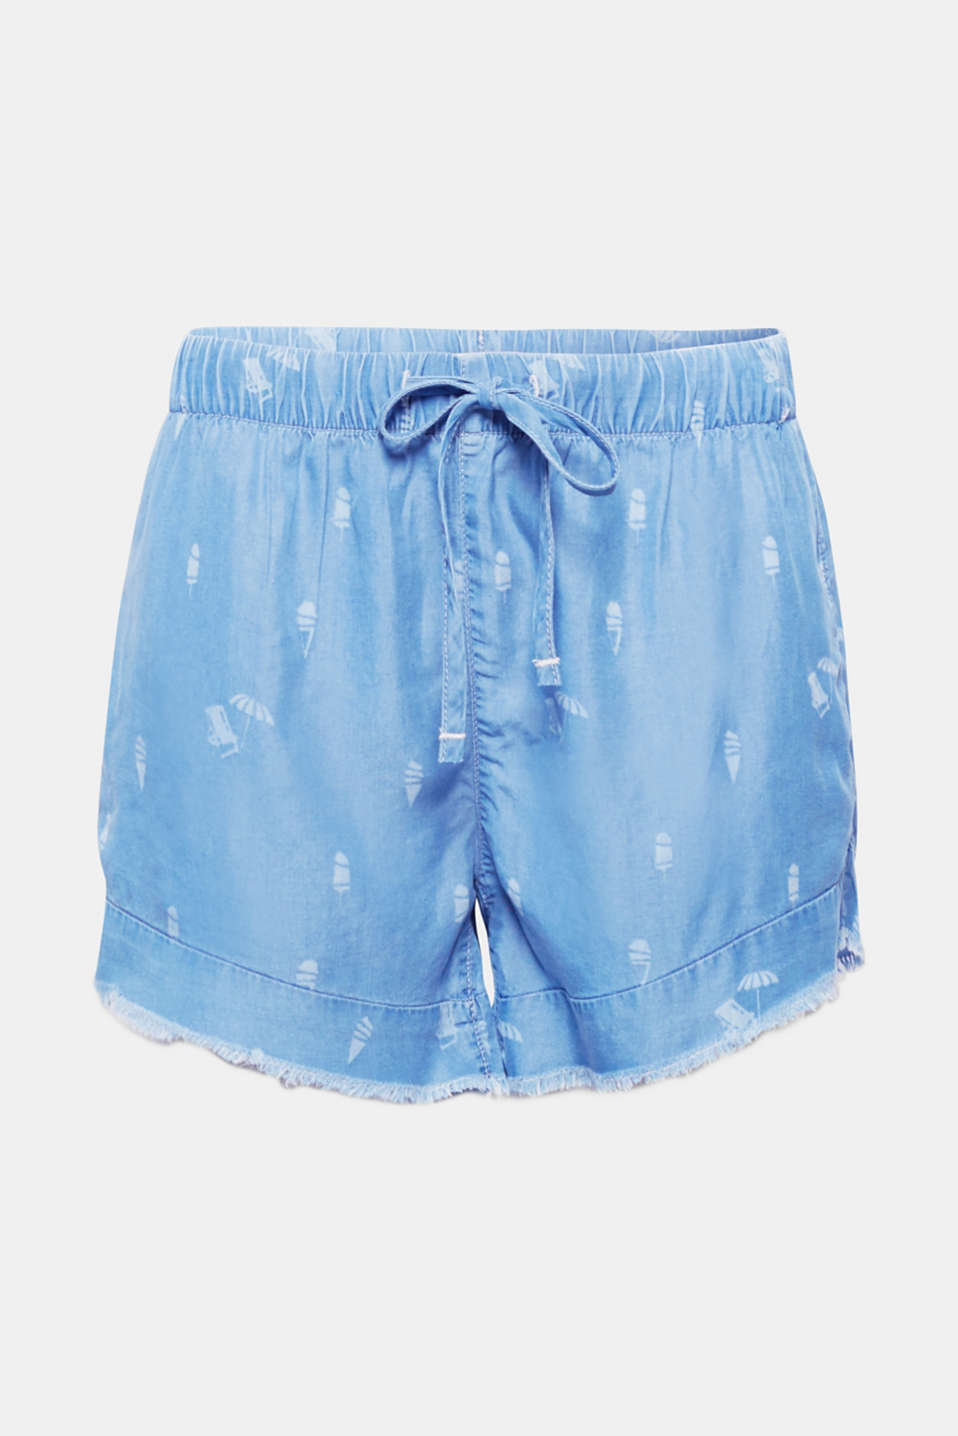 The loose silhouette, ultra soft faux denim composed of lyocell and the summery print motifs make these shorts a favourite piece for warm days